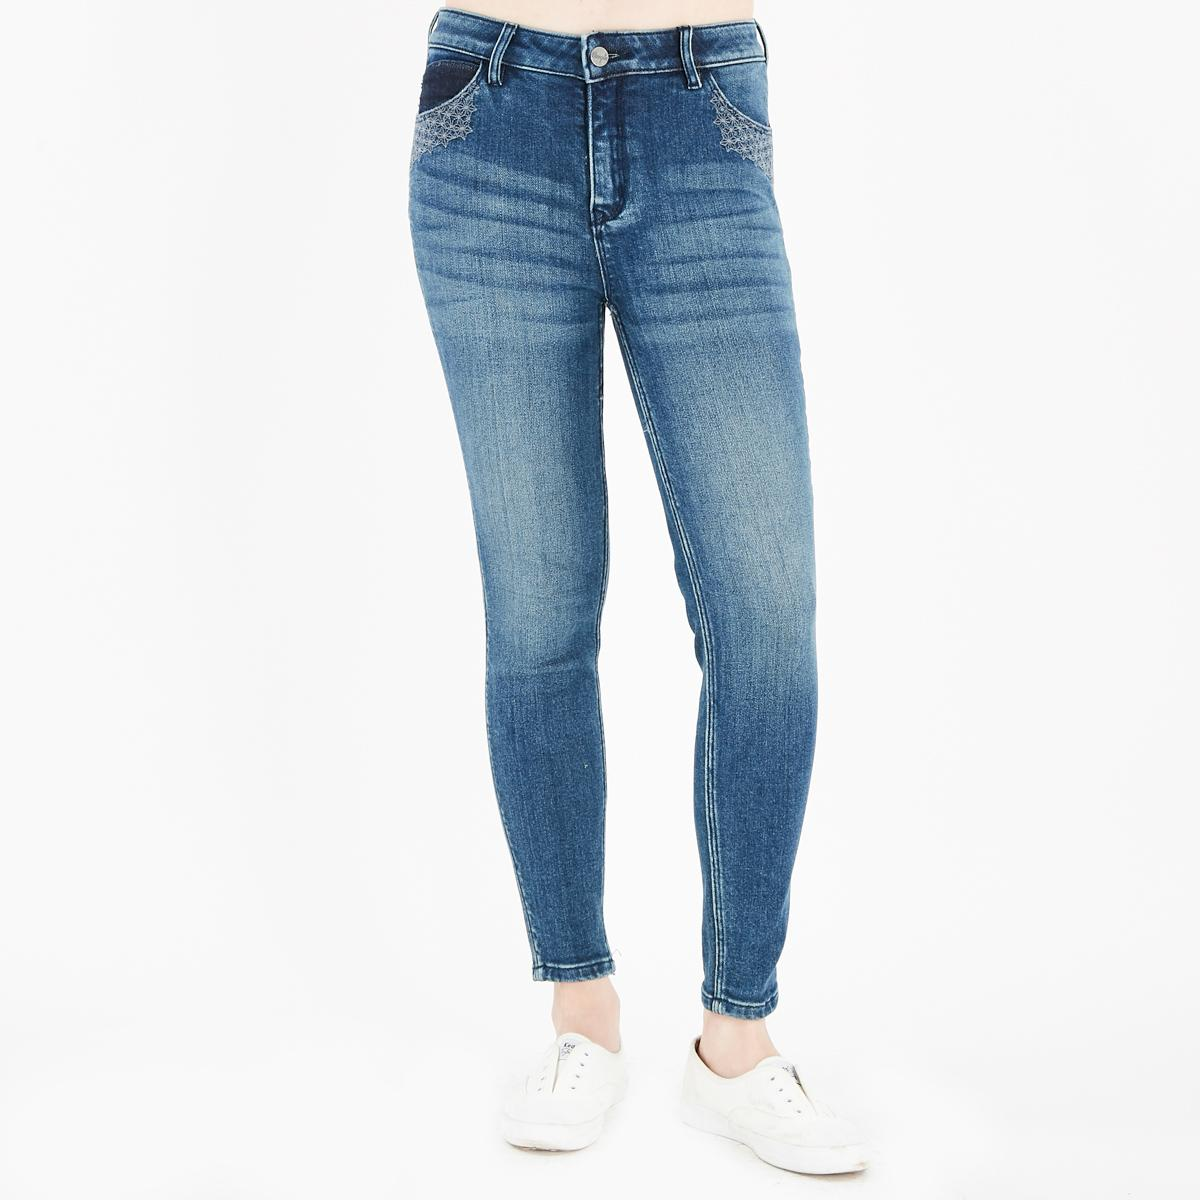 4657419c Wrangler Basic Five Pocket High Rise Skinny Ankle Jeans in Medium Wash with  Sacshiko Embroidery